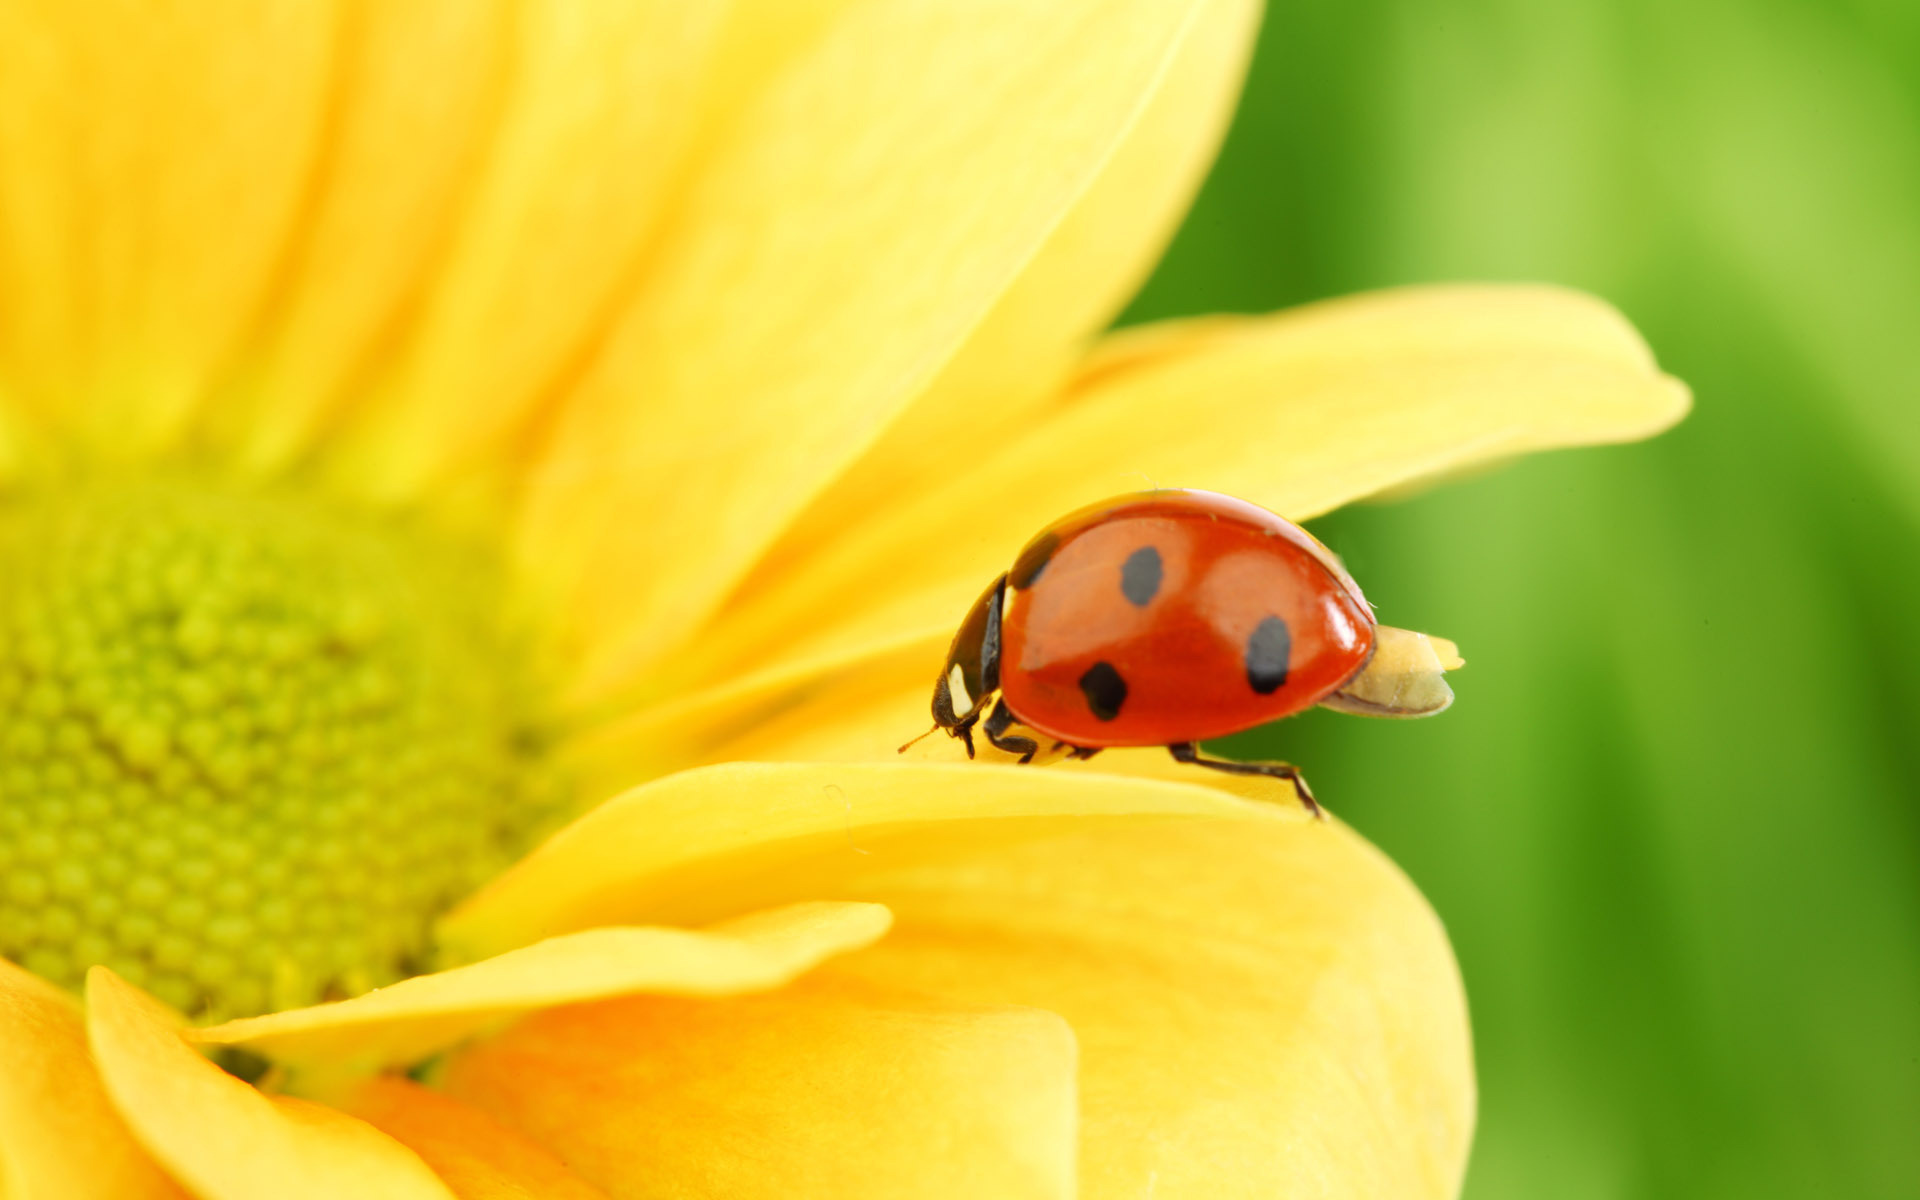 Ladybug-on-Flowers-picture